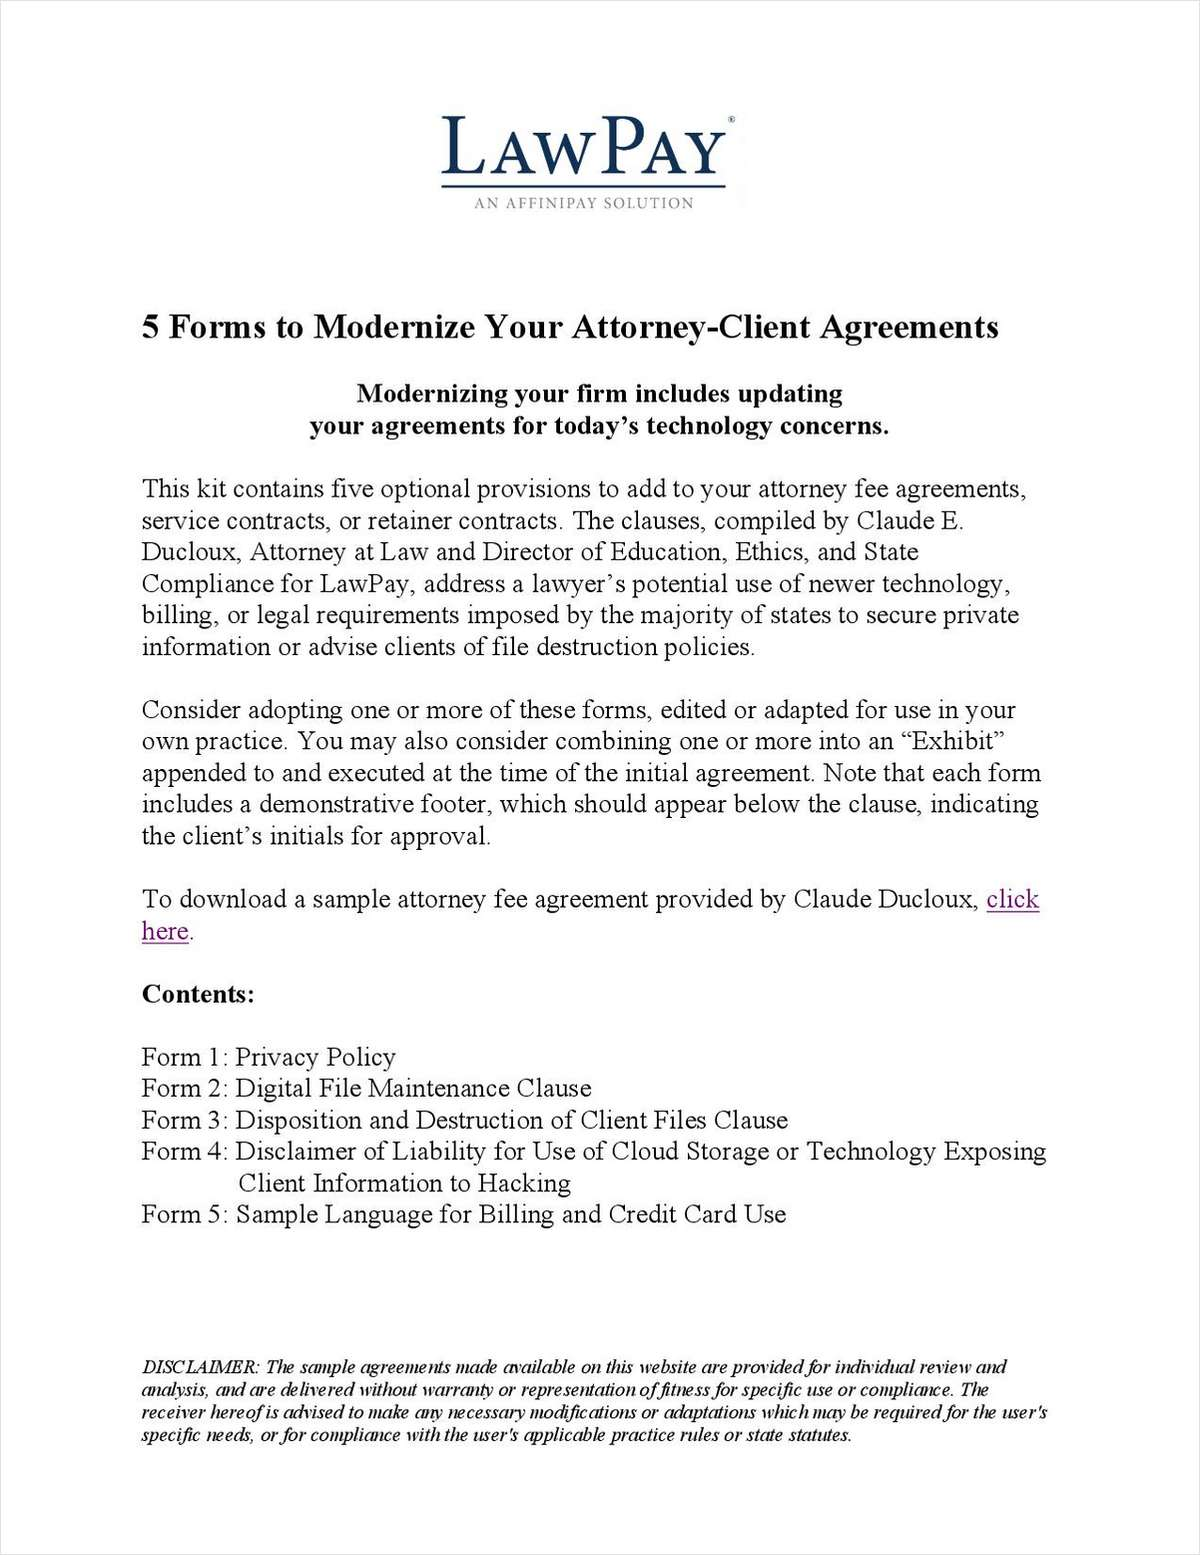 5 Forms to Modernize Your Attorney-Client Agreements